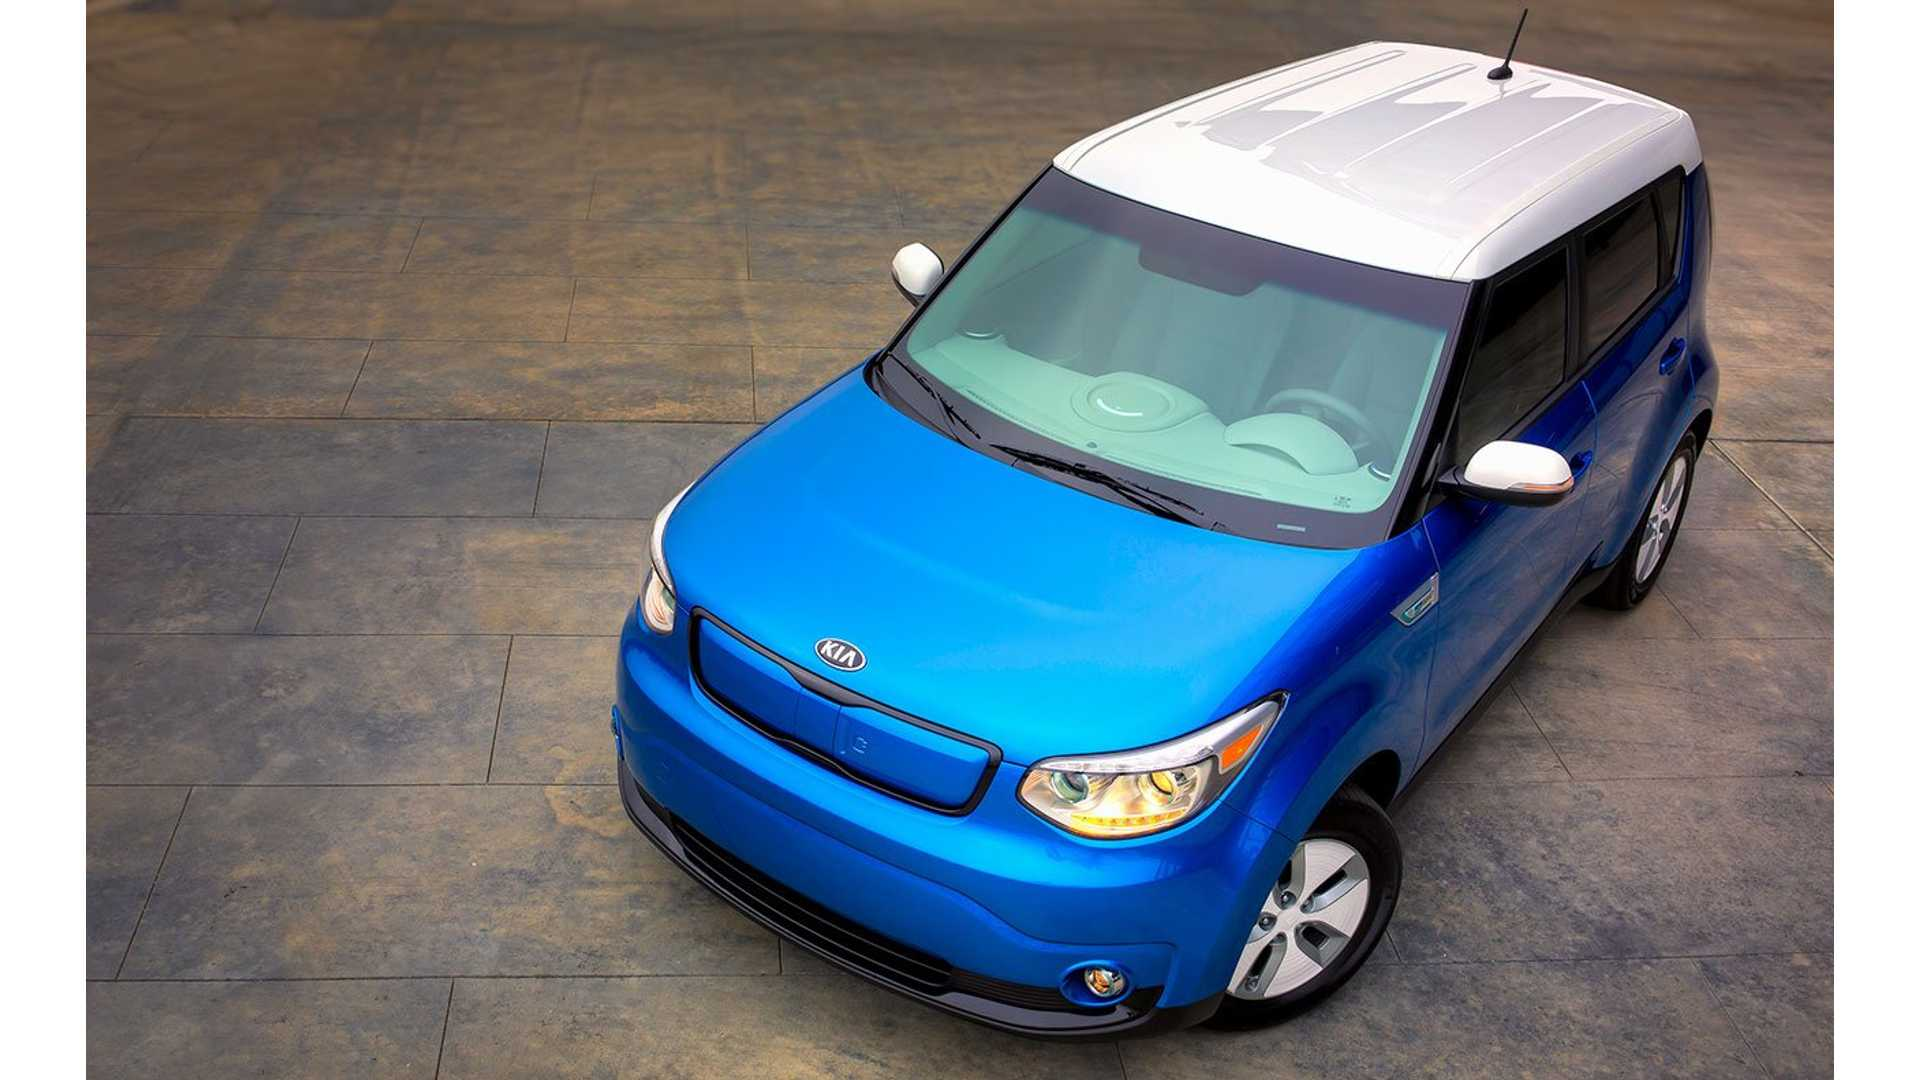 2017 Kia Soul Ev Gets Official Epa Range Rating Of 93 Miles City Will Your Mind